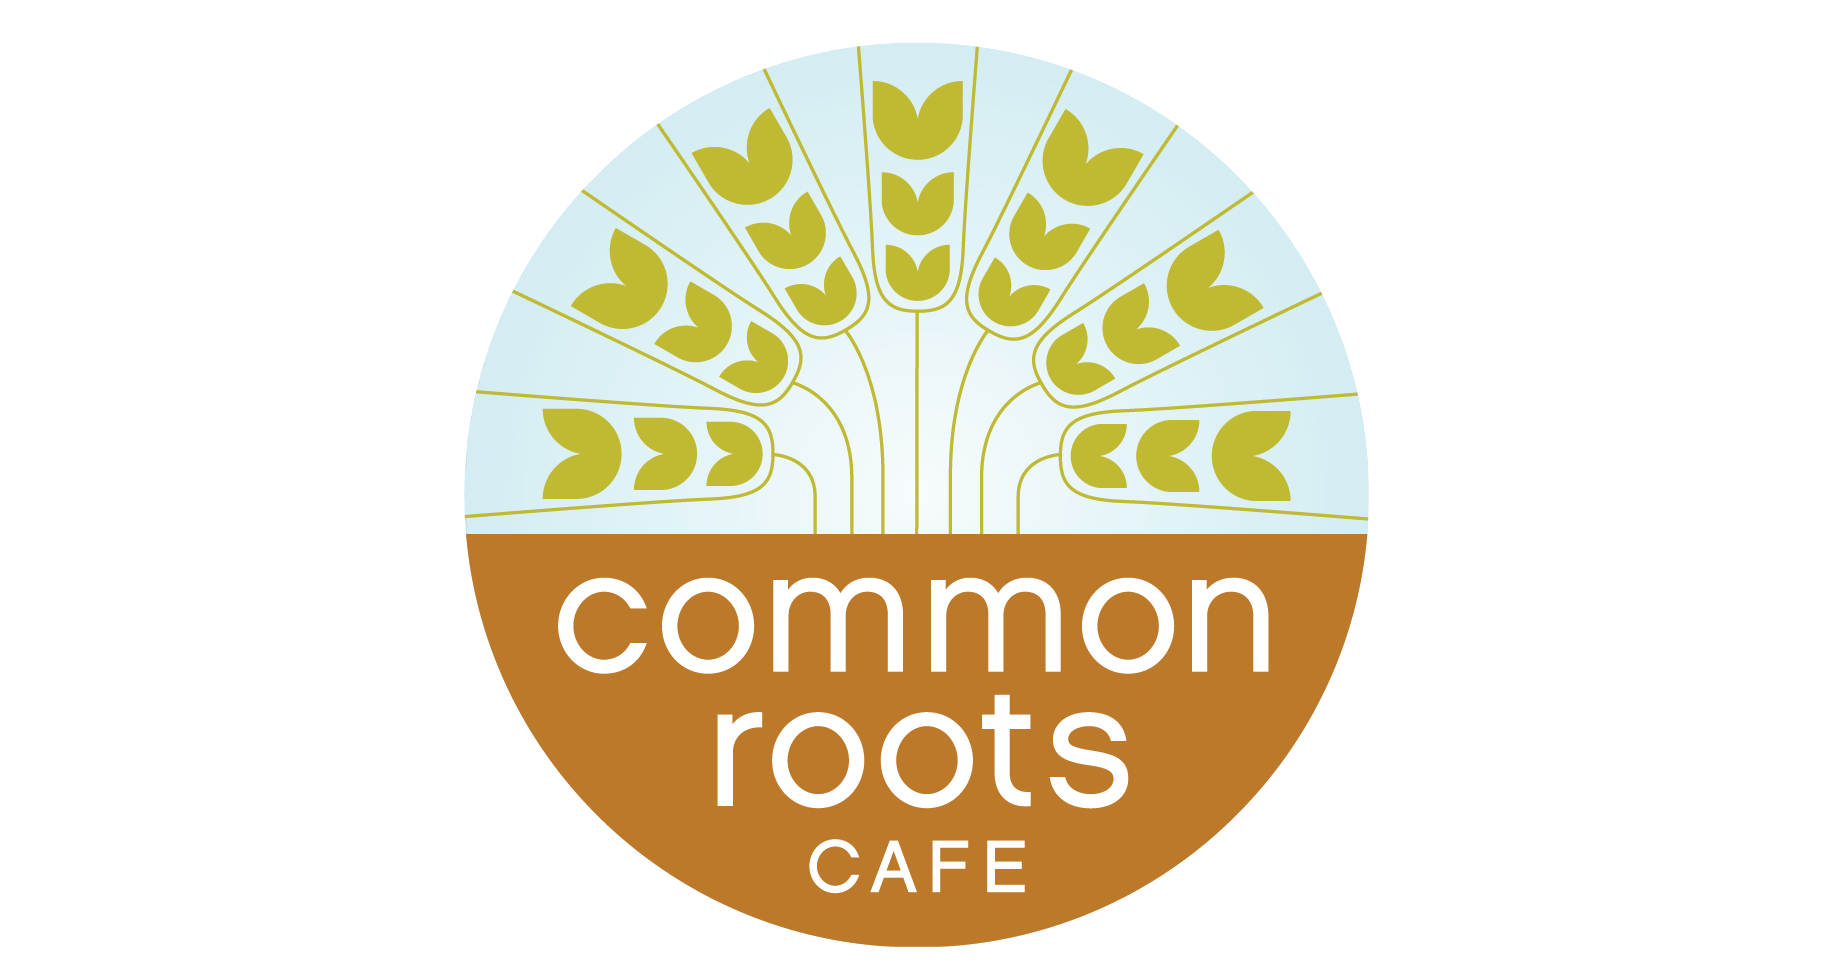 The Common Cafe Menu